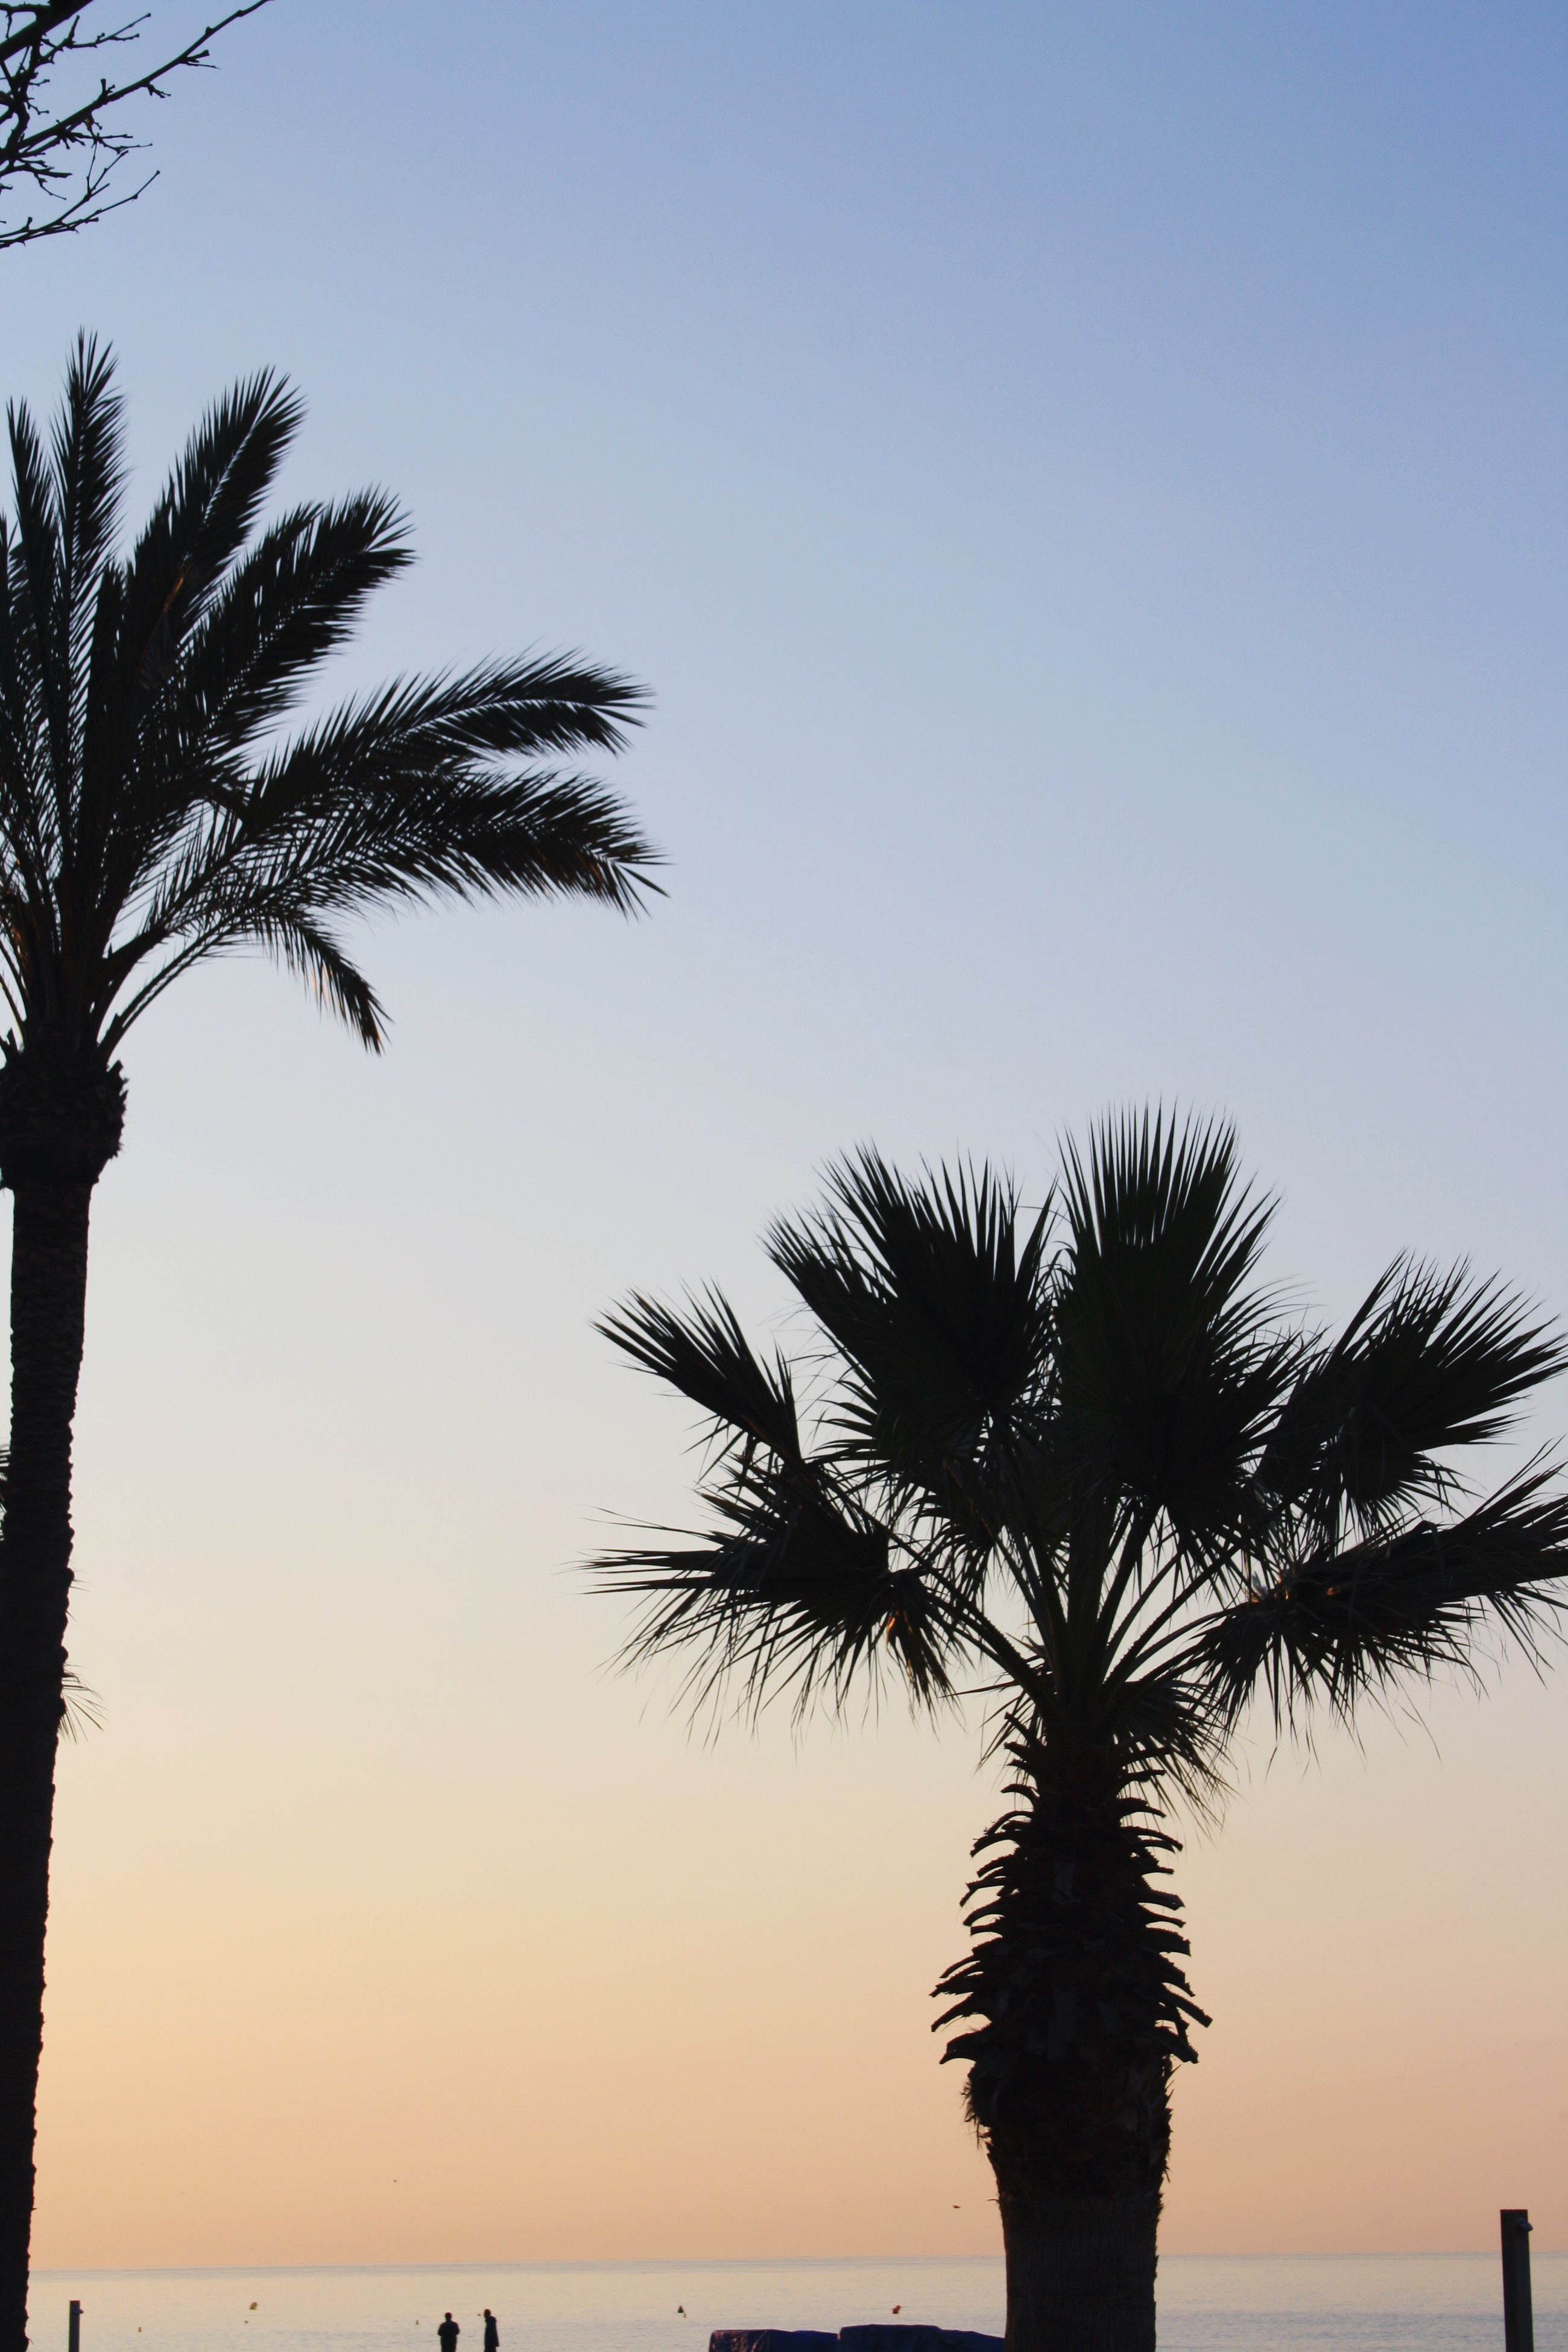 palm tree, tree, beauty in nature, clear sky, silhouette, scenics, nature, sunset, sky, tranquility, tree trunk, sea, tranquil scene, beach, palm frond, growth, horizon over water, outdoors, no people, water, day